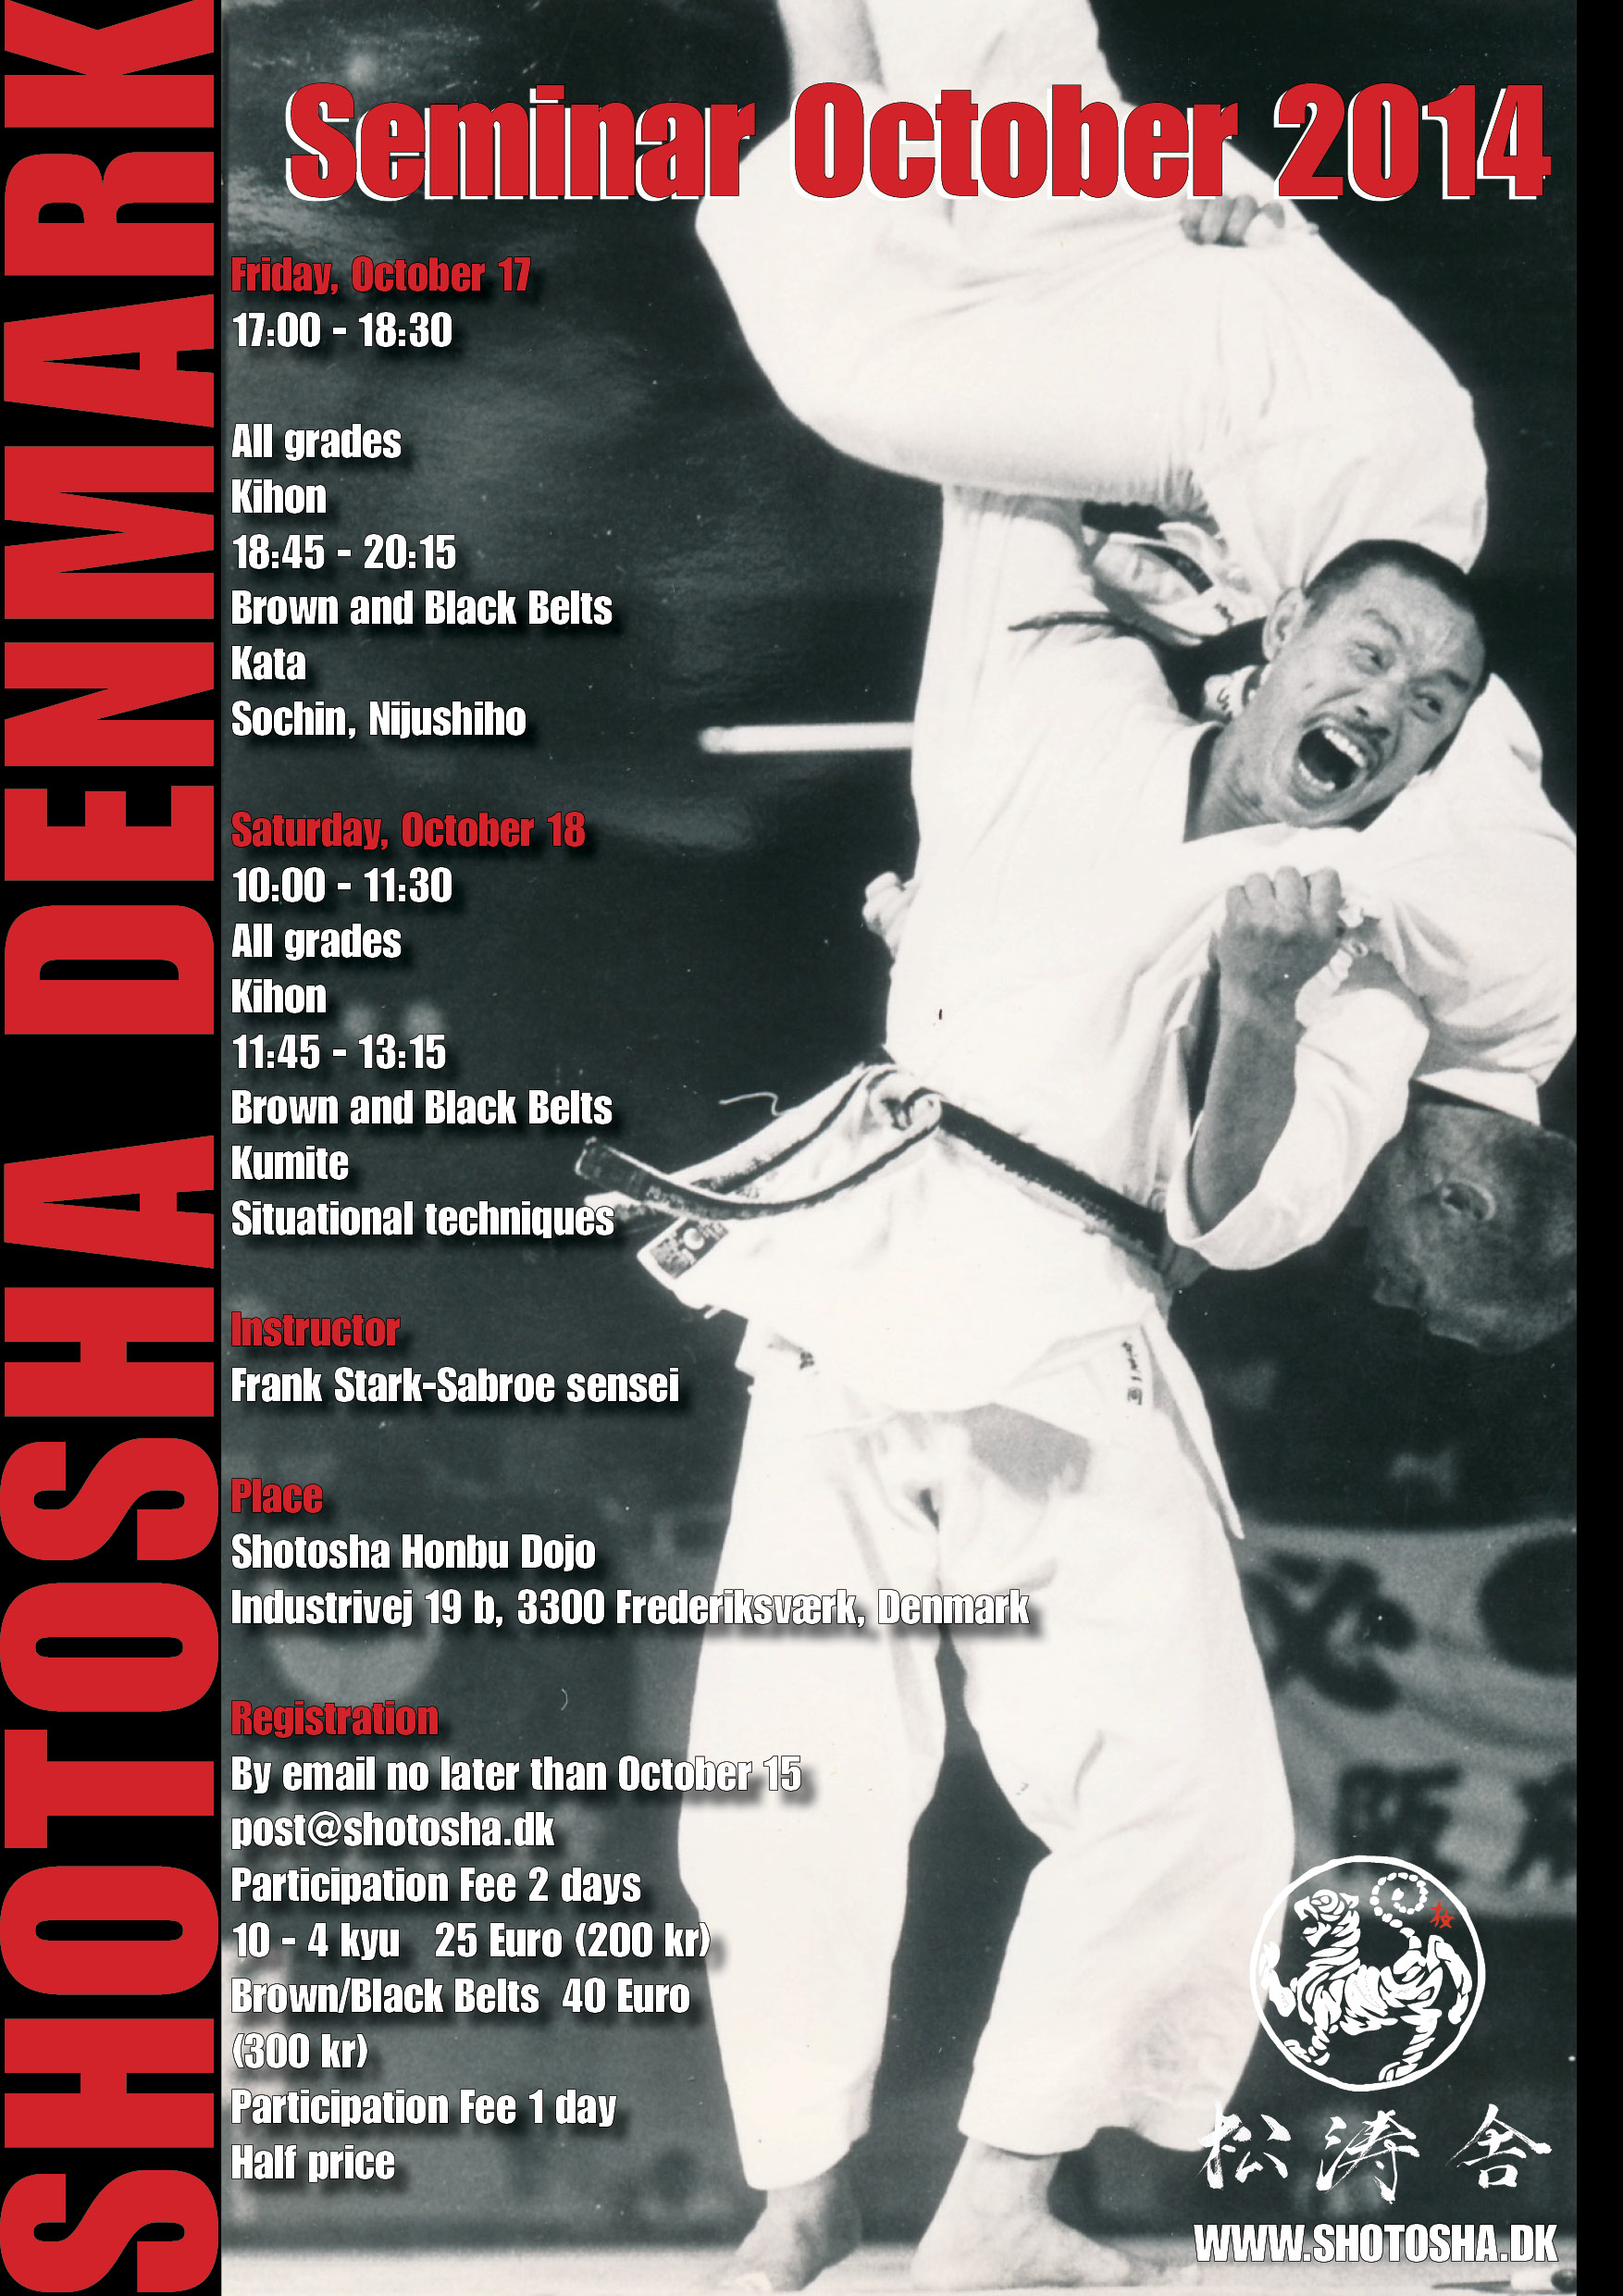 October seminar with Frank Starck-Sabroe sensei